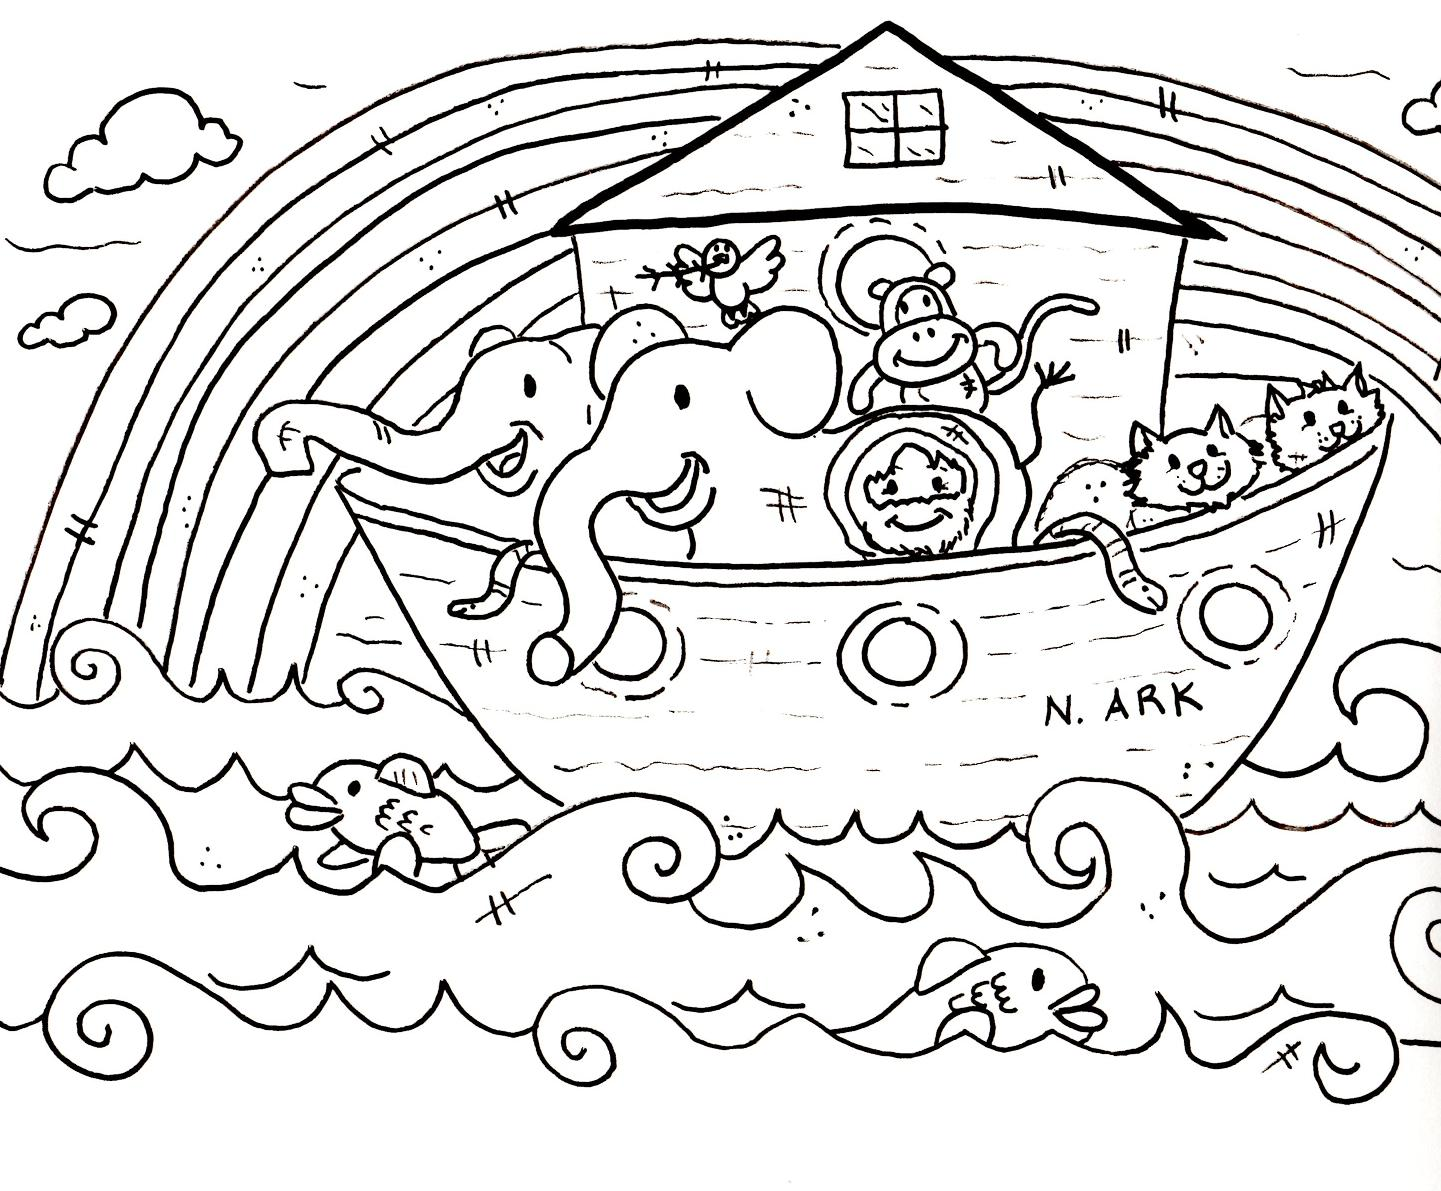 Noah's Ark Rainbow Coloring Sheet http://www.scraphappypapercrafter.com/2012/03/free-digis-great-for-sunday-school.html